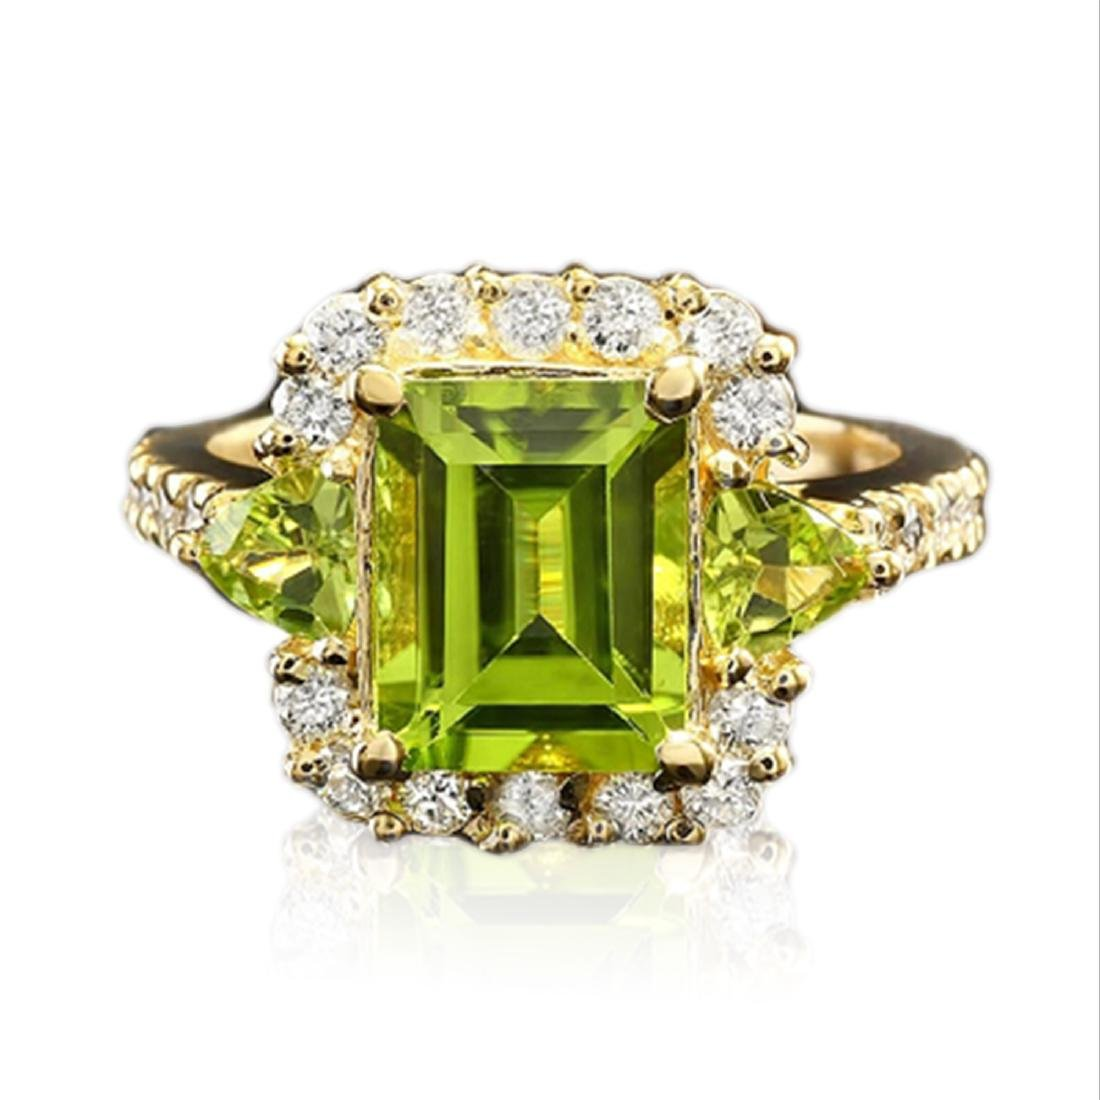 3.10 Carat Natural Peridot 18K Solid Yellow Gold